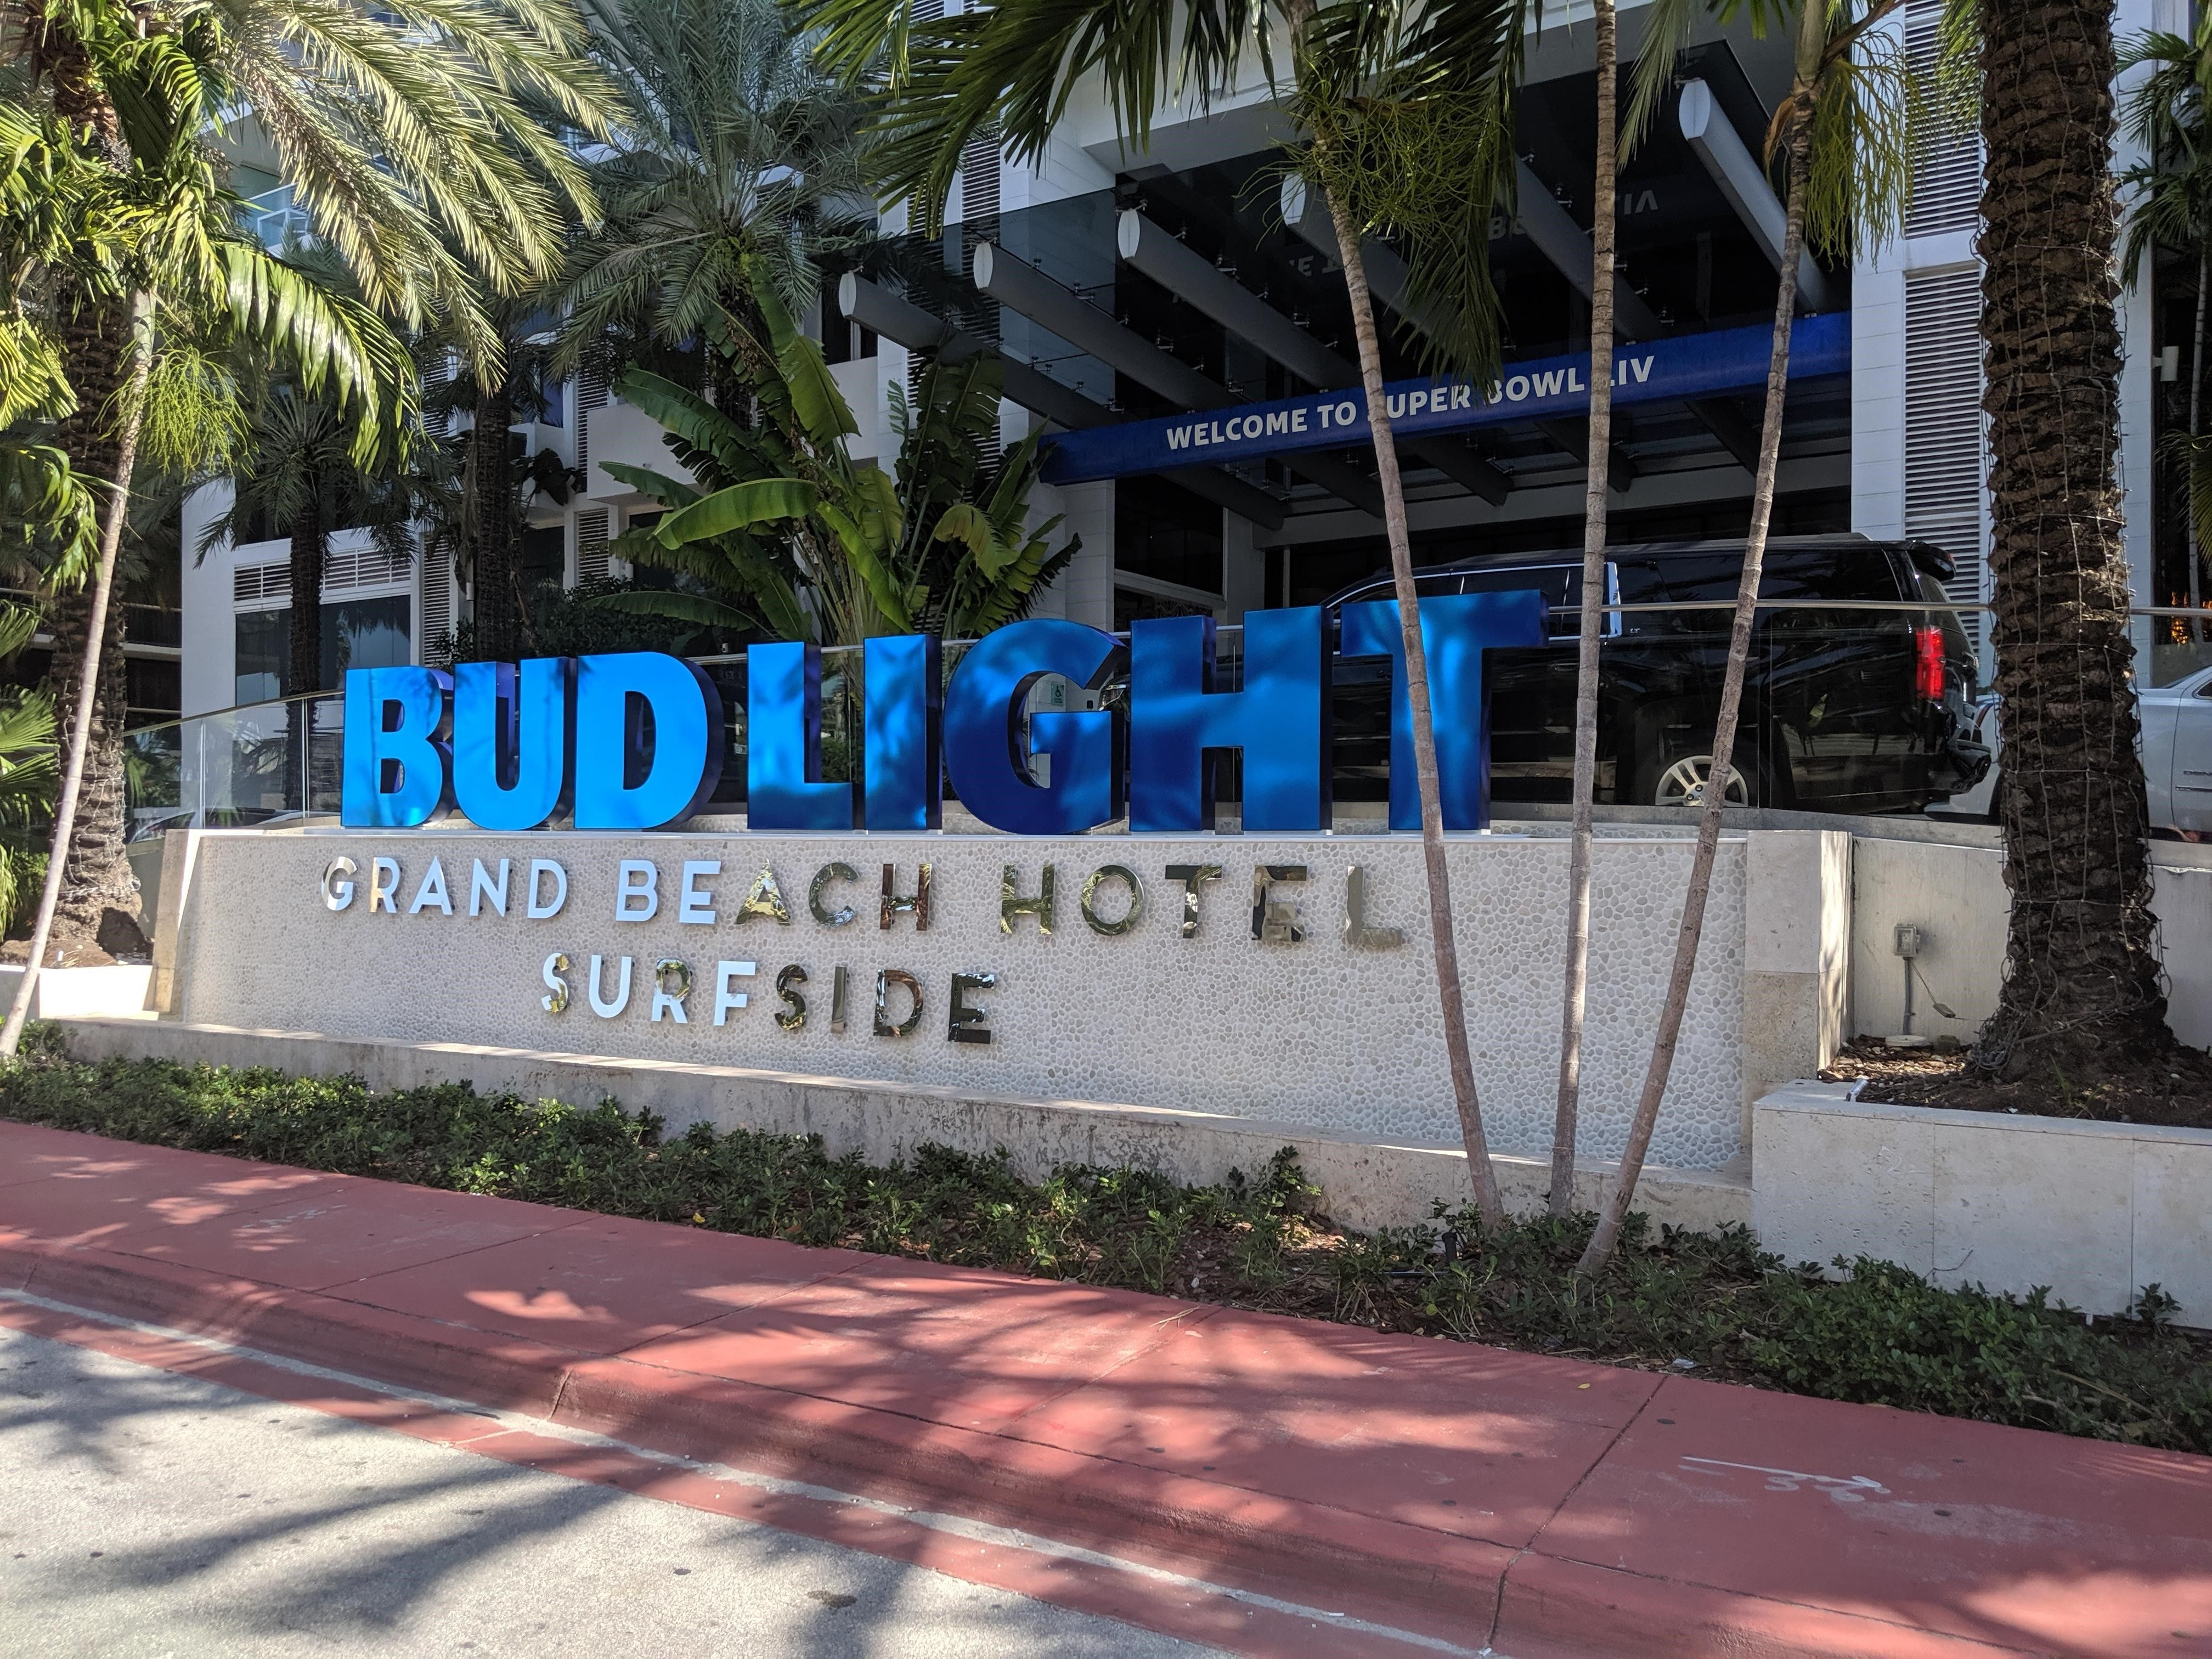 Bud Light Hotel 2020